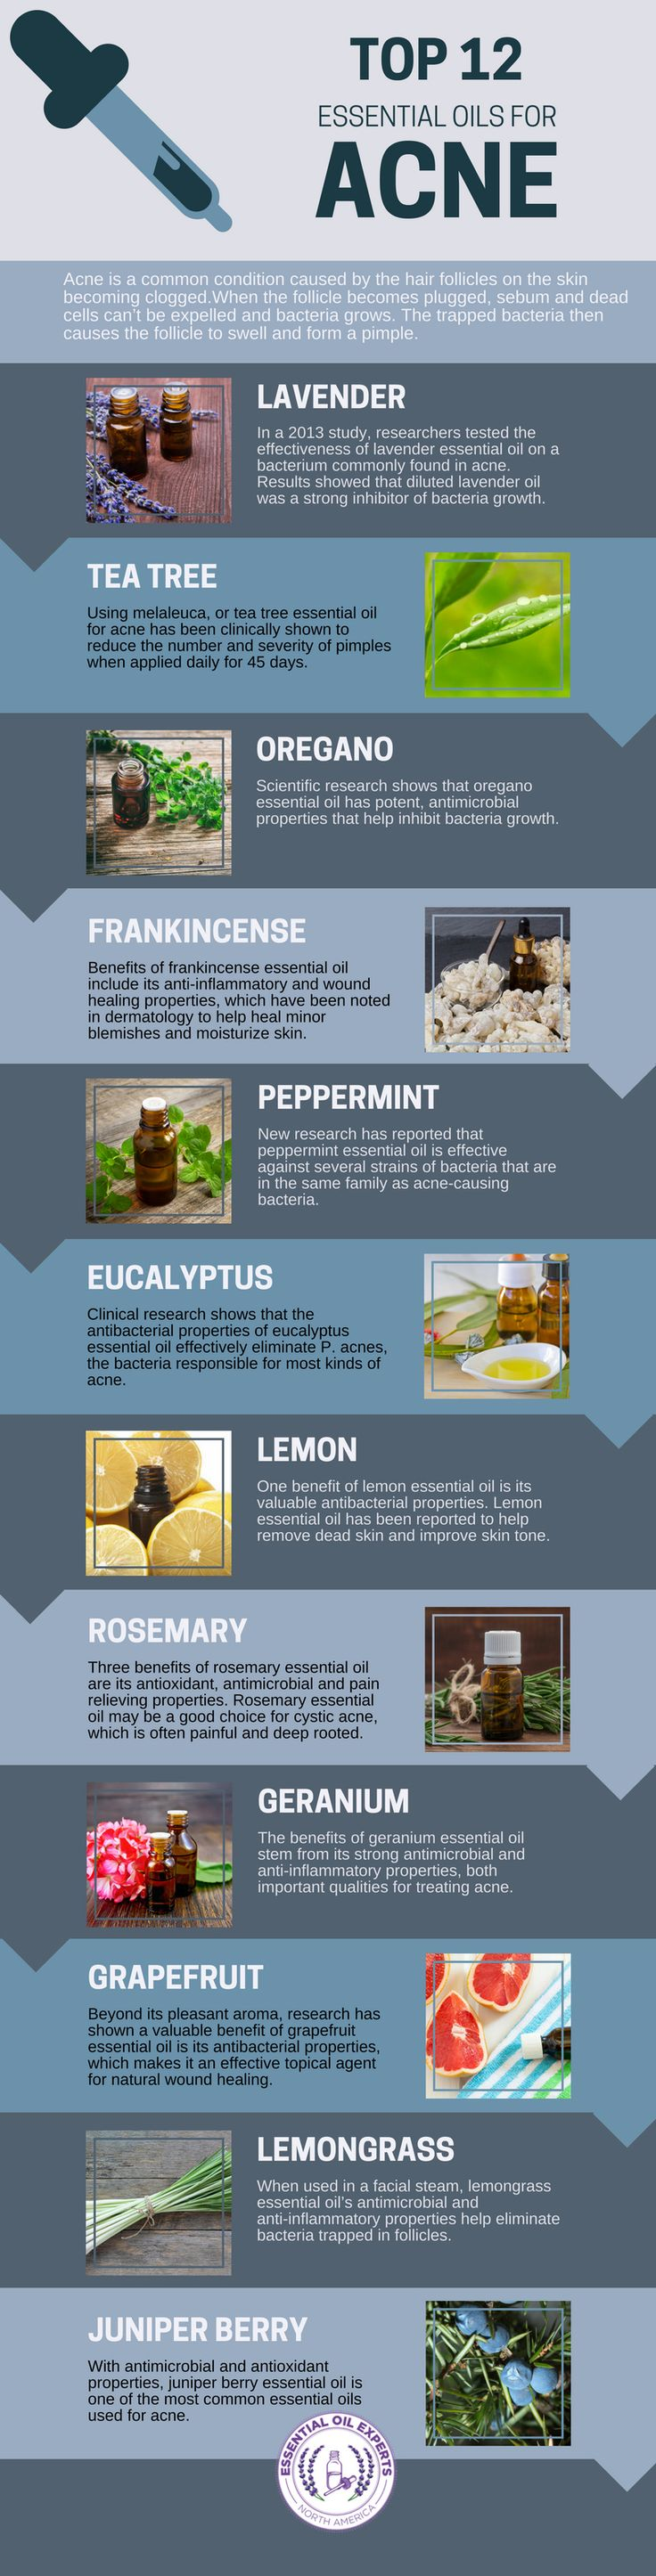 Top 12 Essential Oils for Acne, Pimples, Blackheads & Blemishes